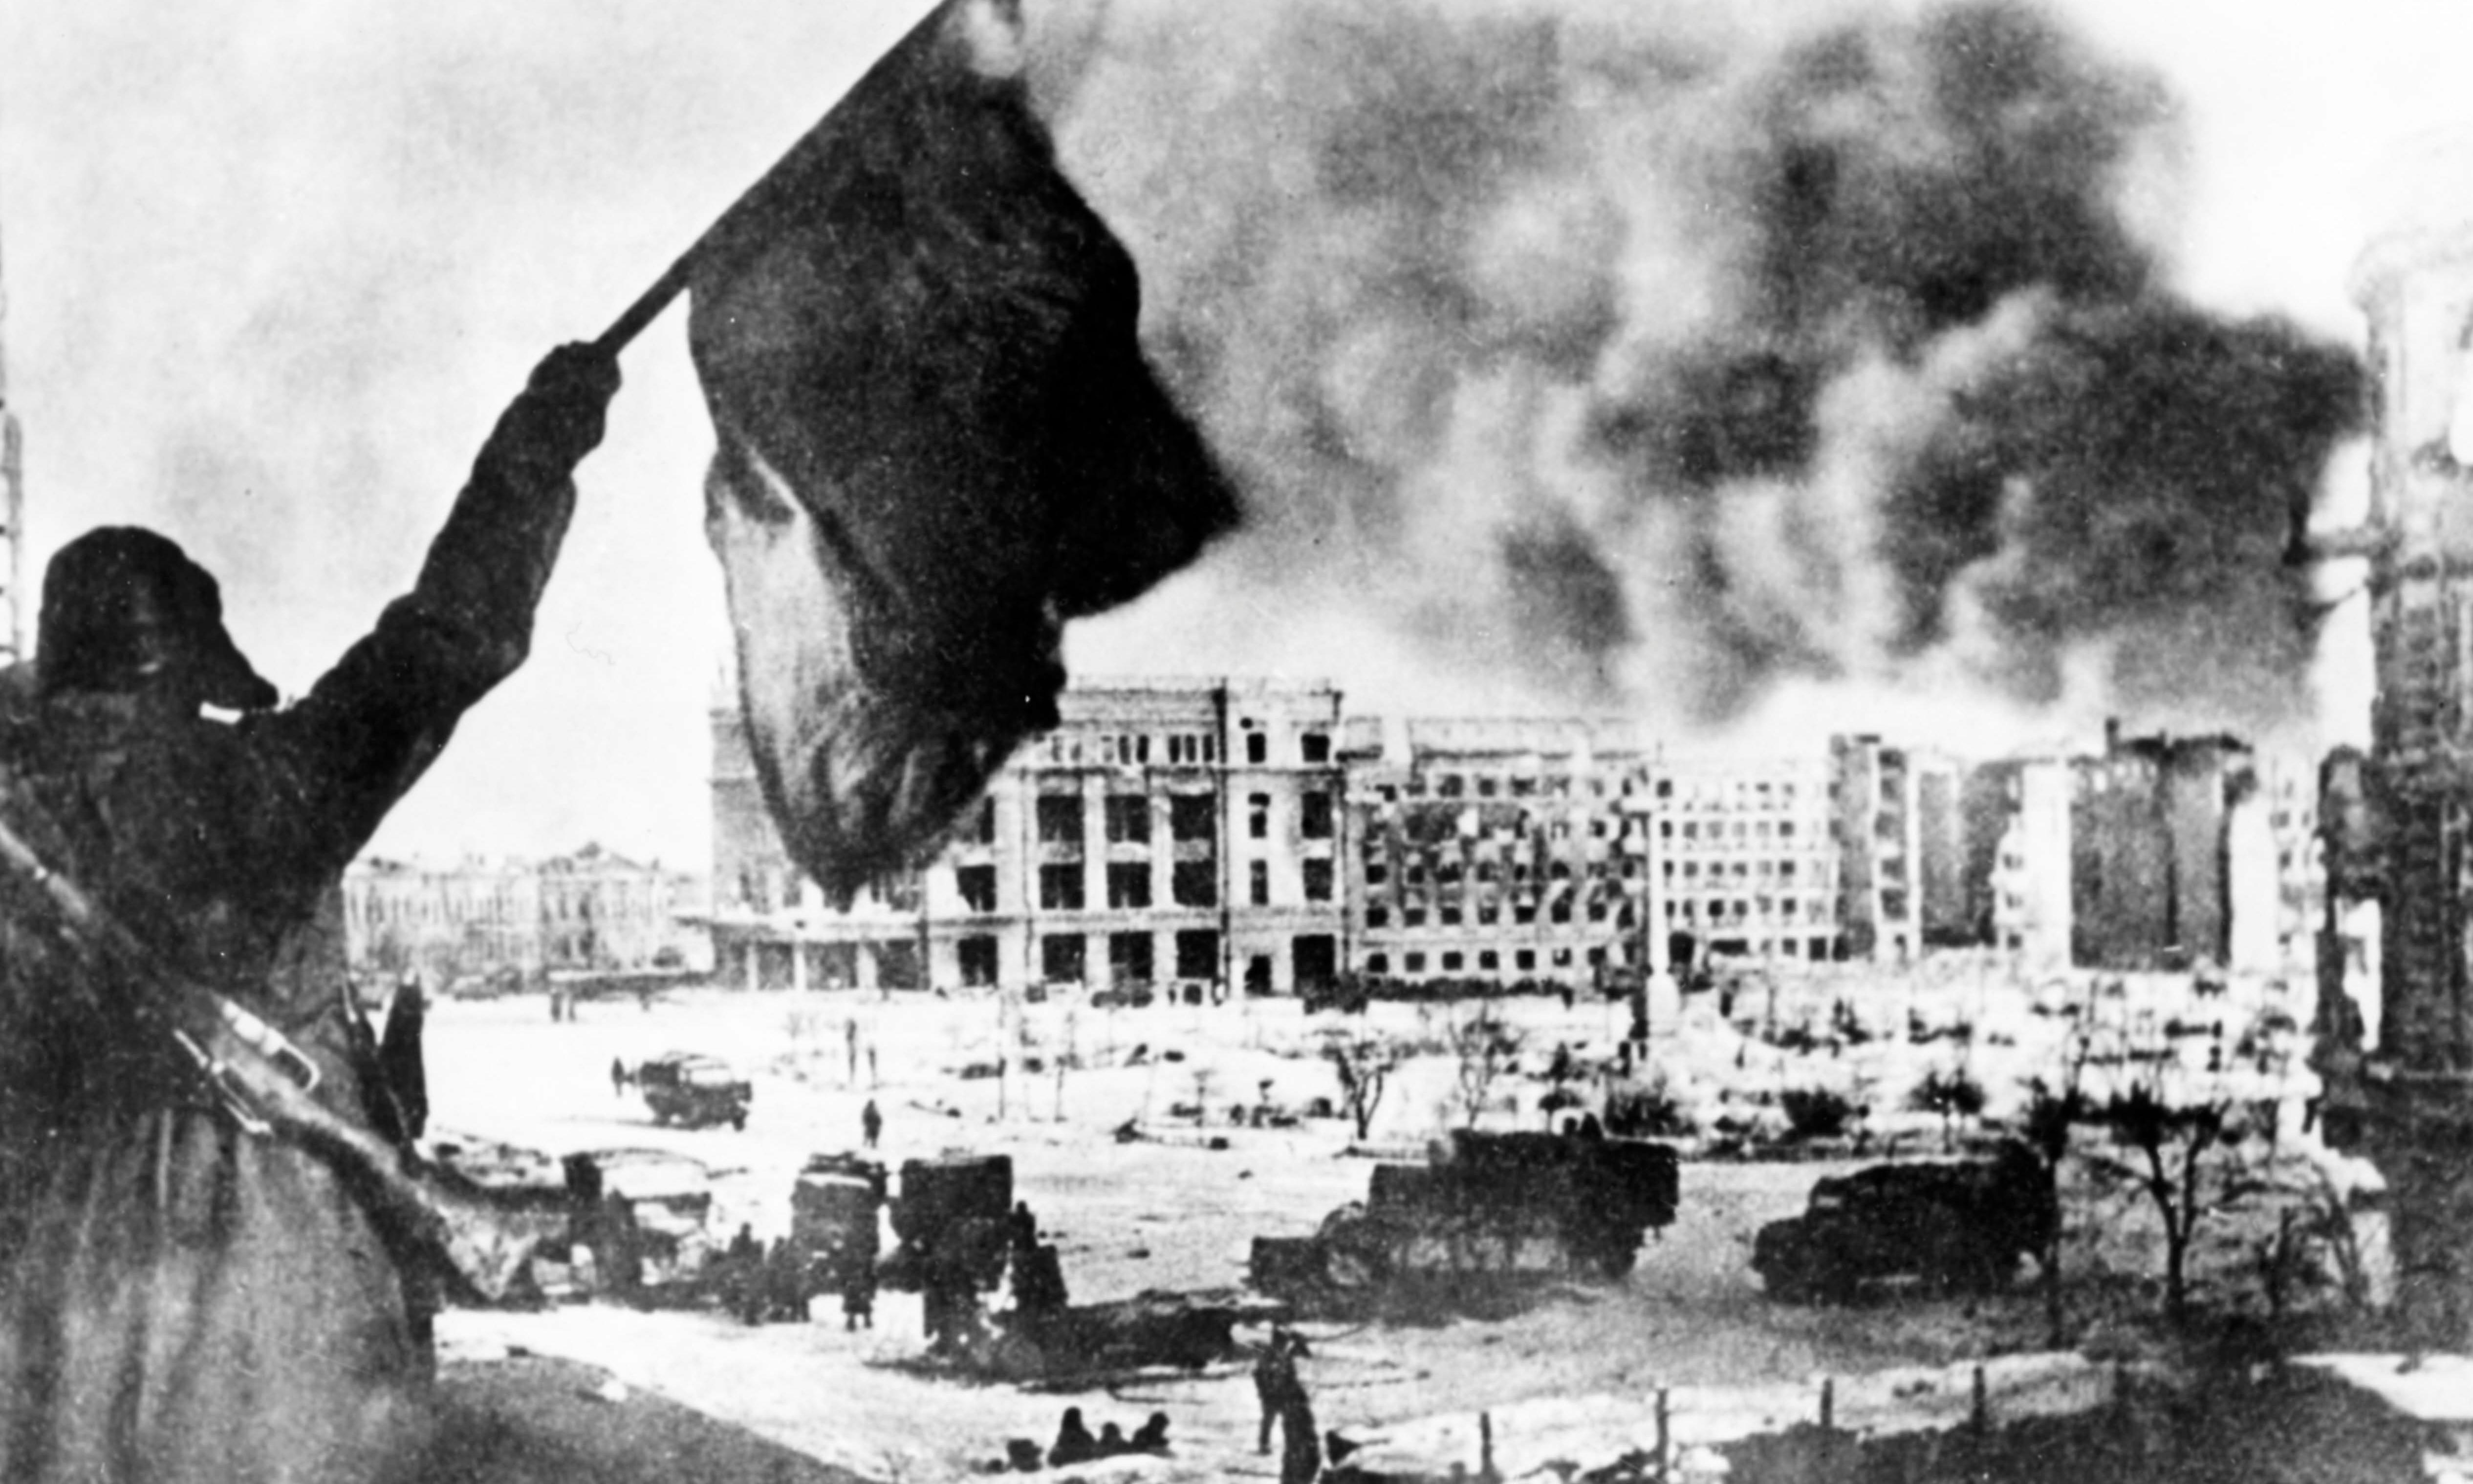 Stalingrad by Vasily Grossman review – the prequel to Life and Fate